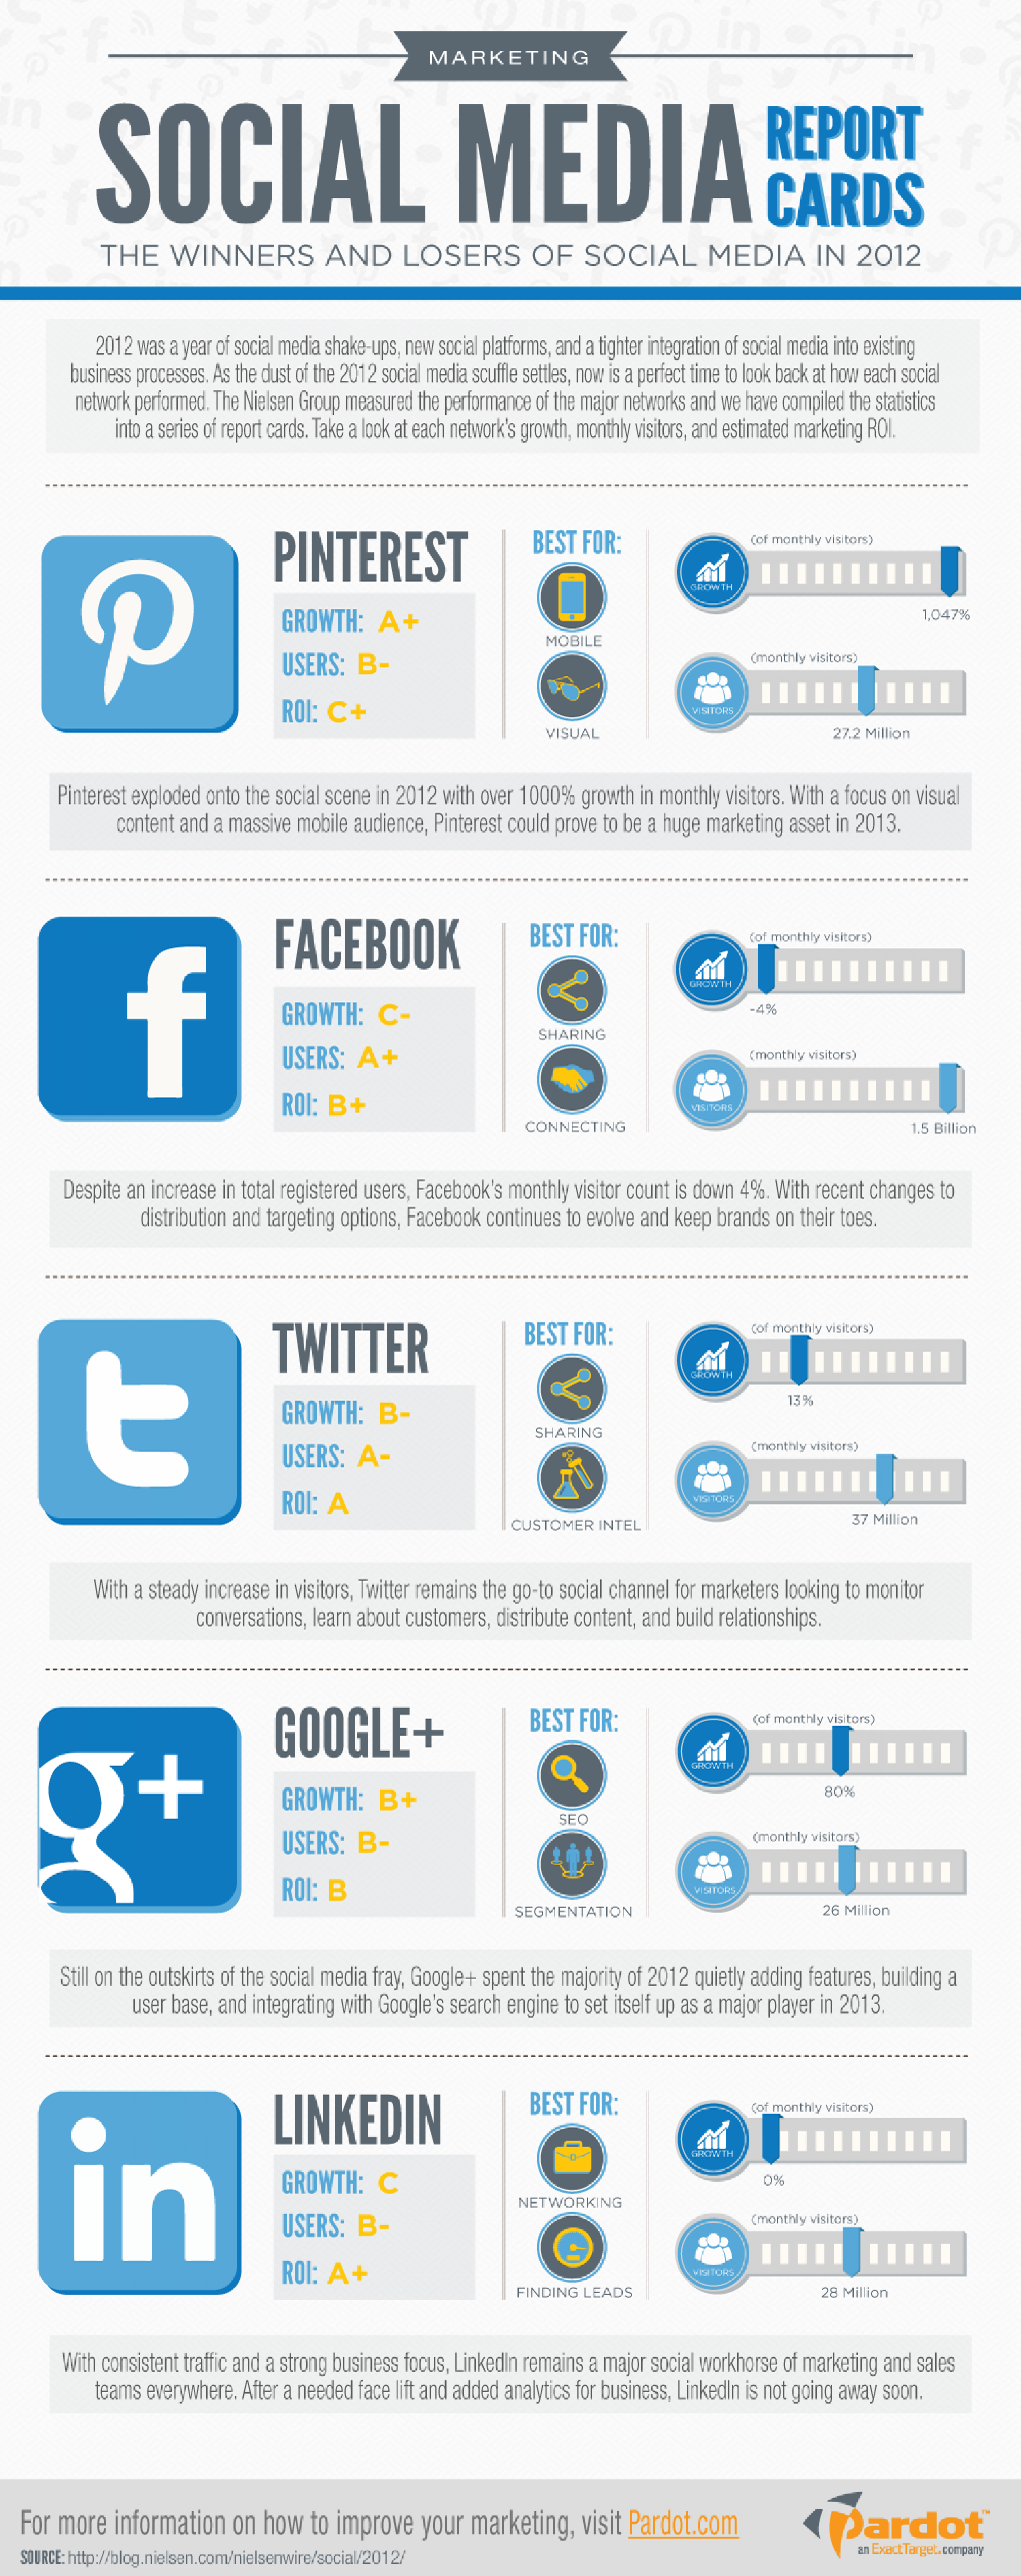 2012 Social Media Report Cards Infographic